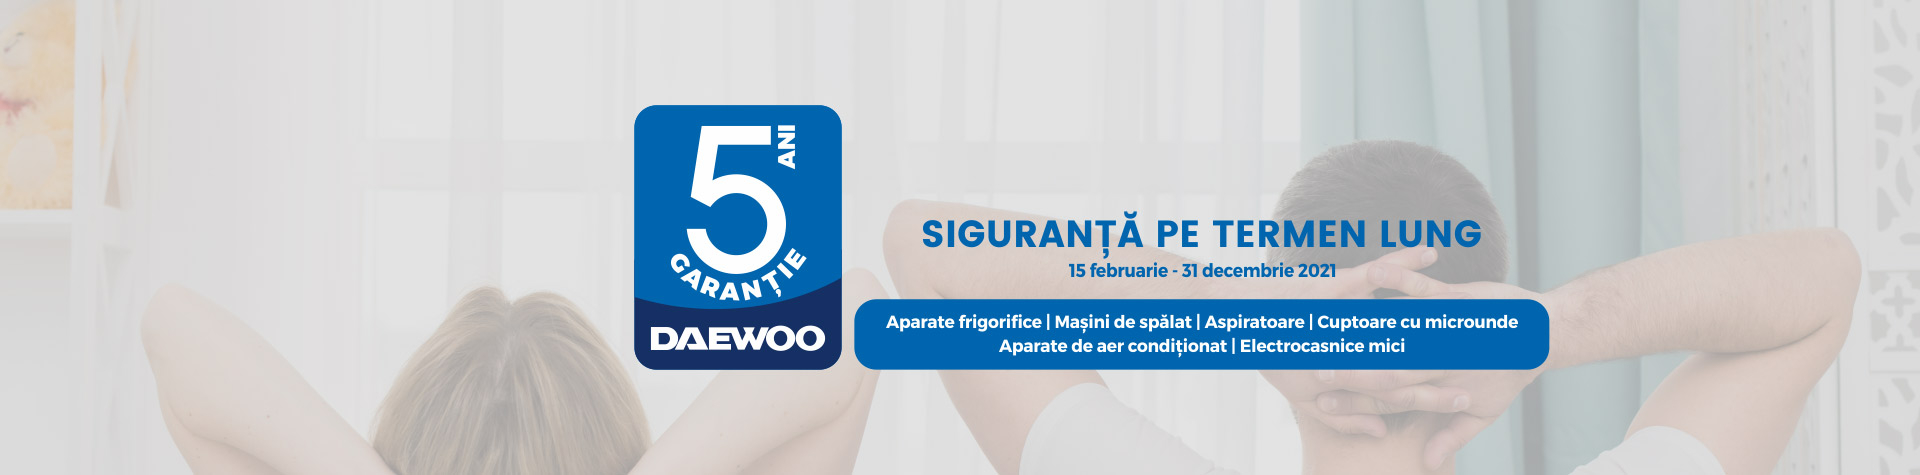 /catalogsearch/result/index/?product_availability=11600&q=daewoo